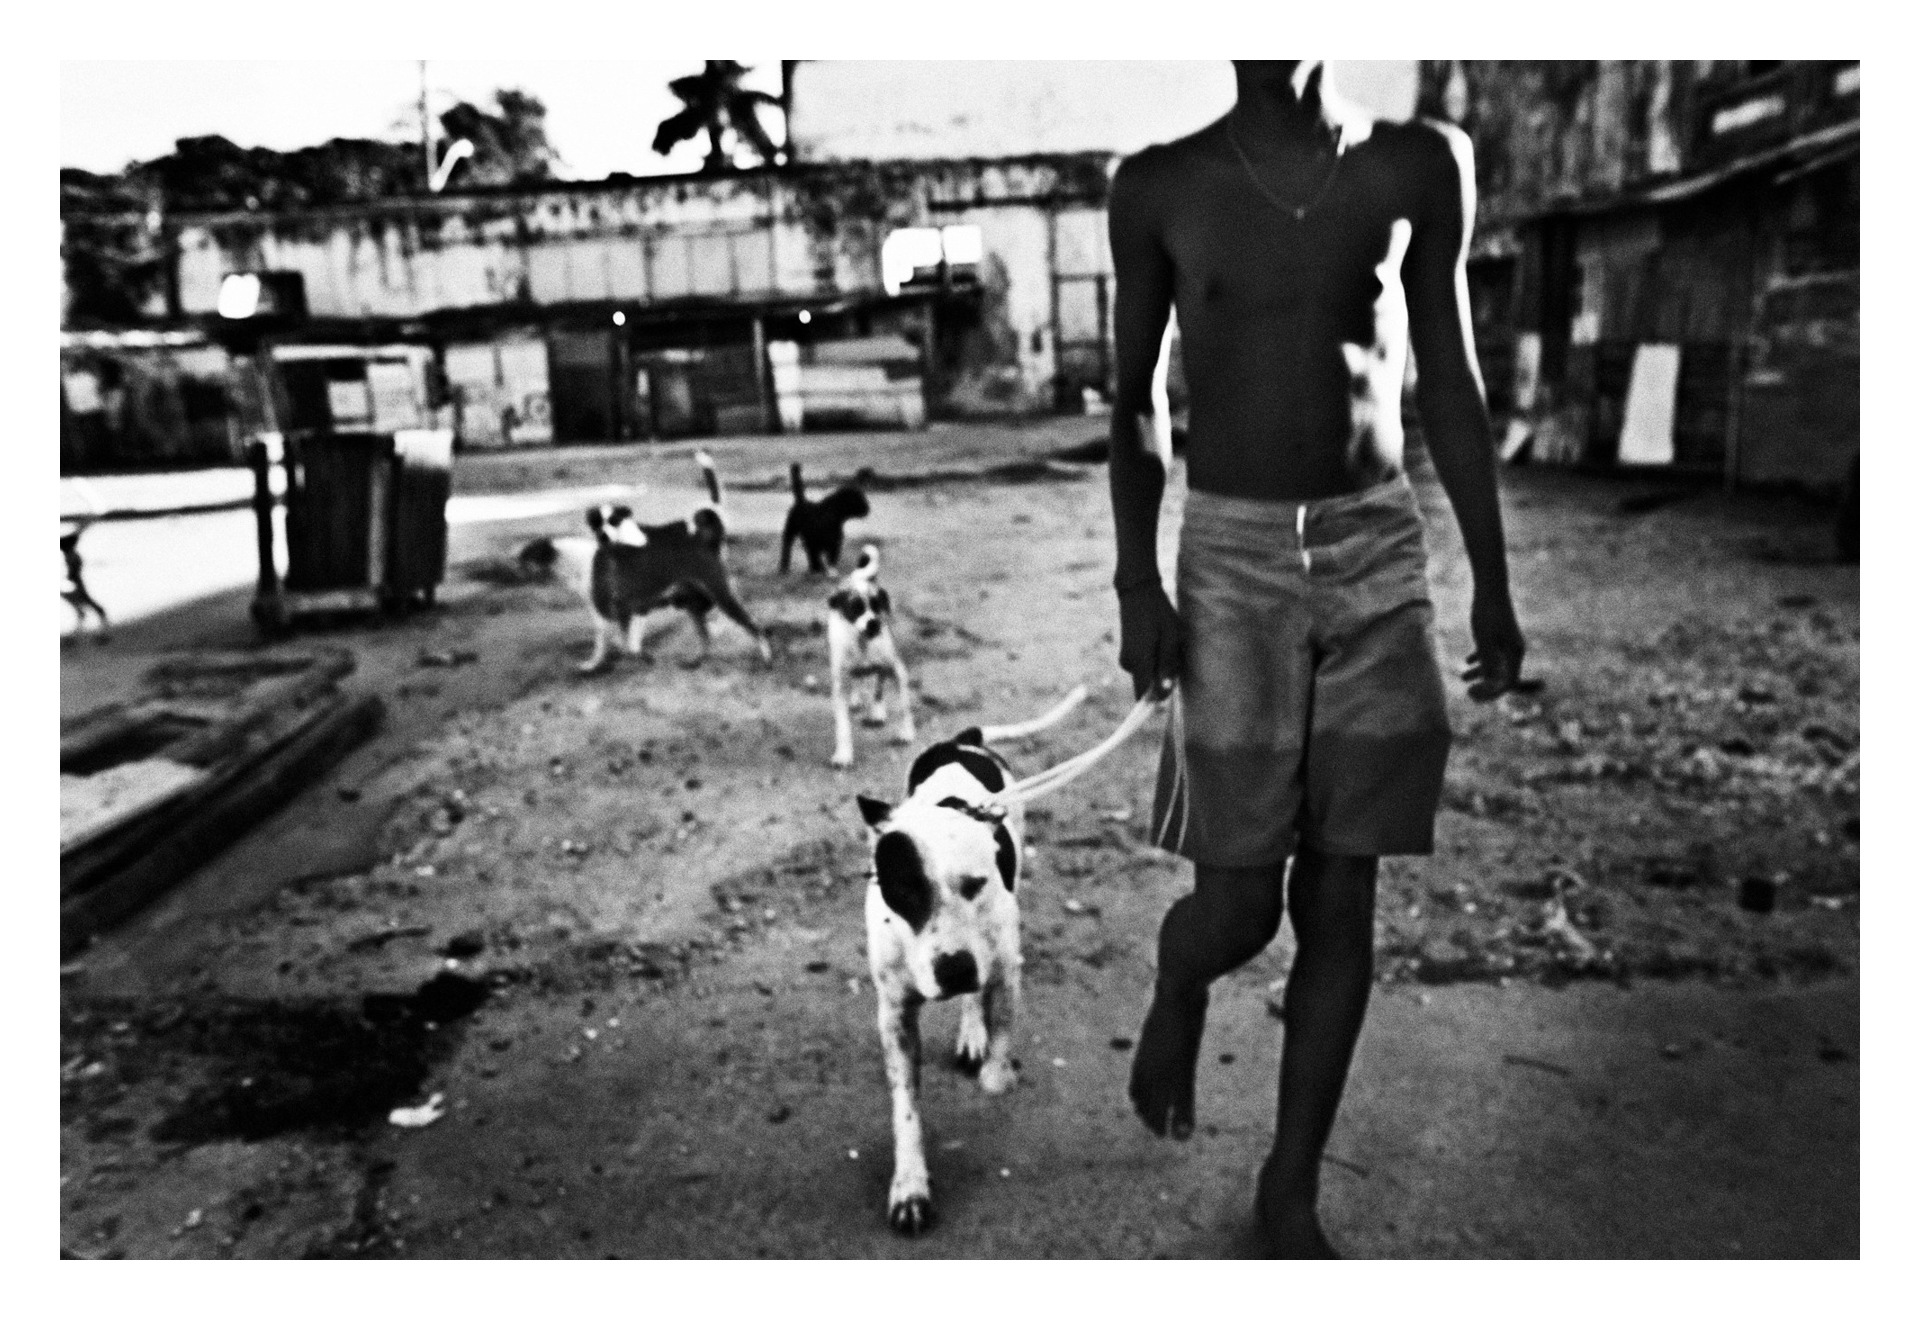 SALVADOR DE BAHIA, BRAZIL ? DECEMBER 10, 2009: A boy with a fighting dog in the courtyard of the factory before start the fight, on December 10, 2009 in Salvador de Bahia, Brazil. Despite the lack of socio-economic support from the government, they have managed to make a safe place for themselves to live, and form a community of their own, which is safer that the alternatives available to them. However they are currently being evicted by the government due to being there illegally.